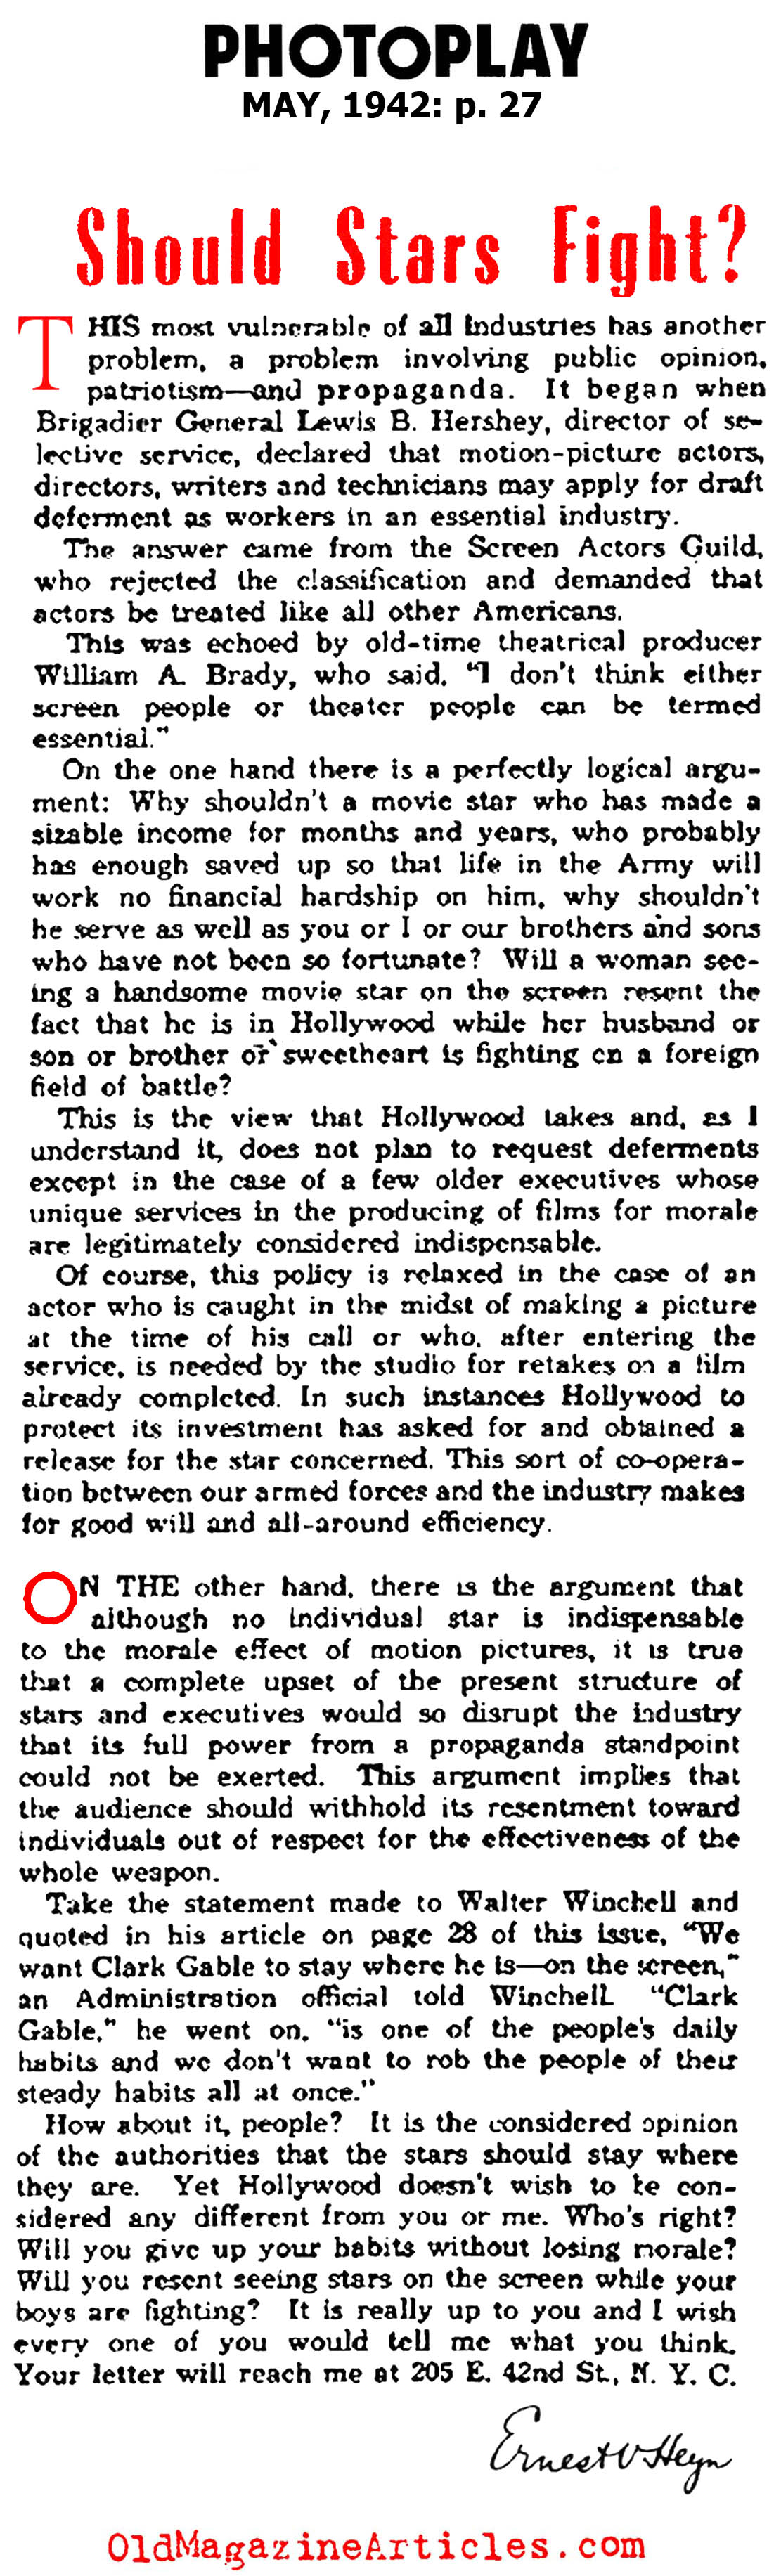 Should Movie Stars Be Expected to Fight , As Well? (Photoplay Magazine, 1942)